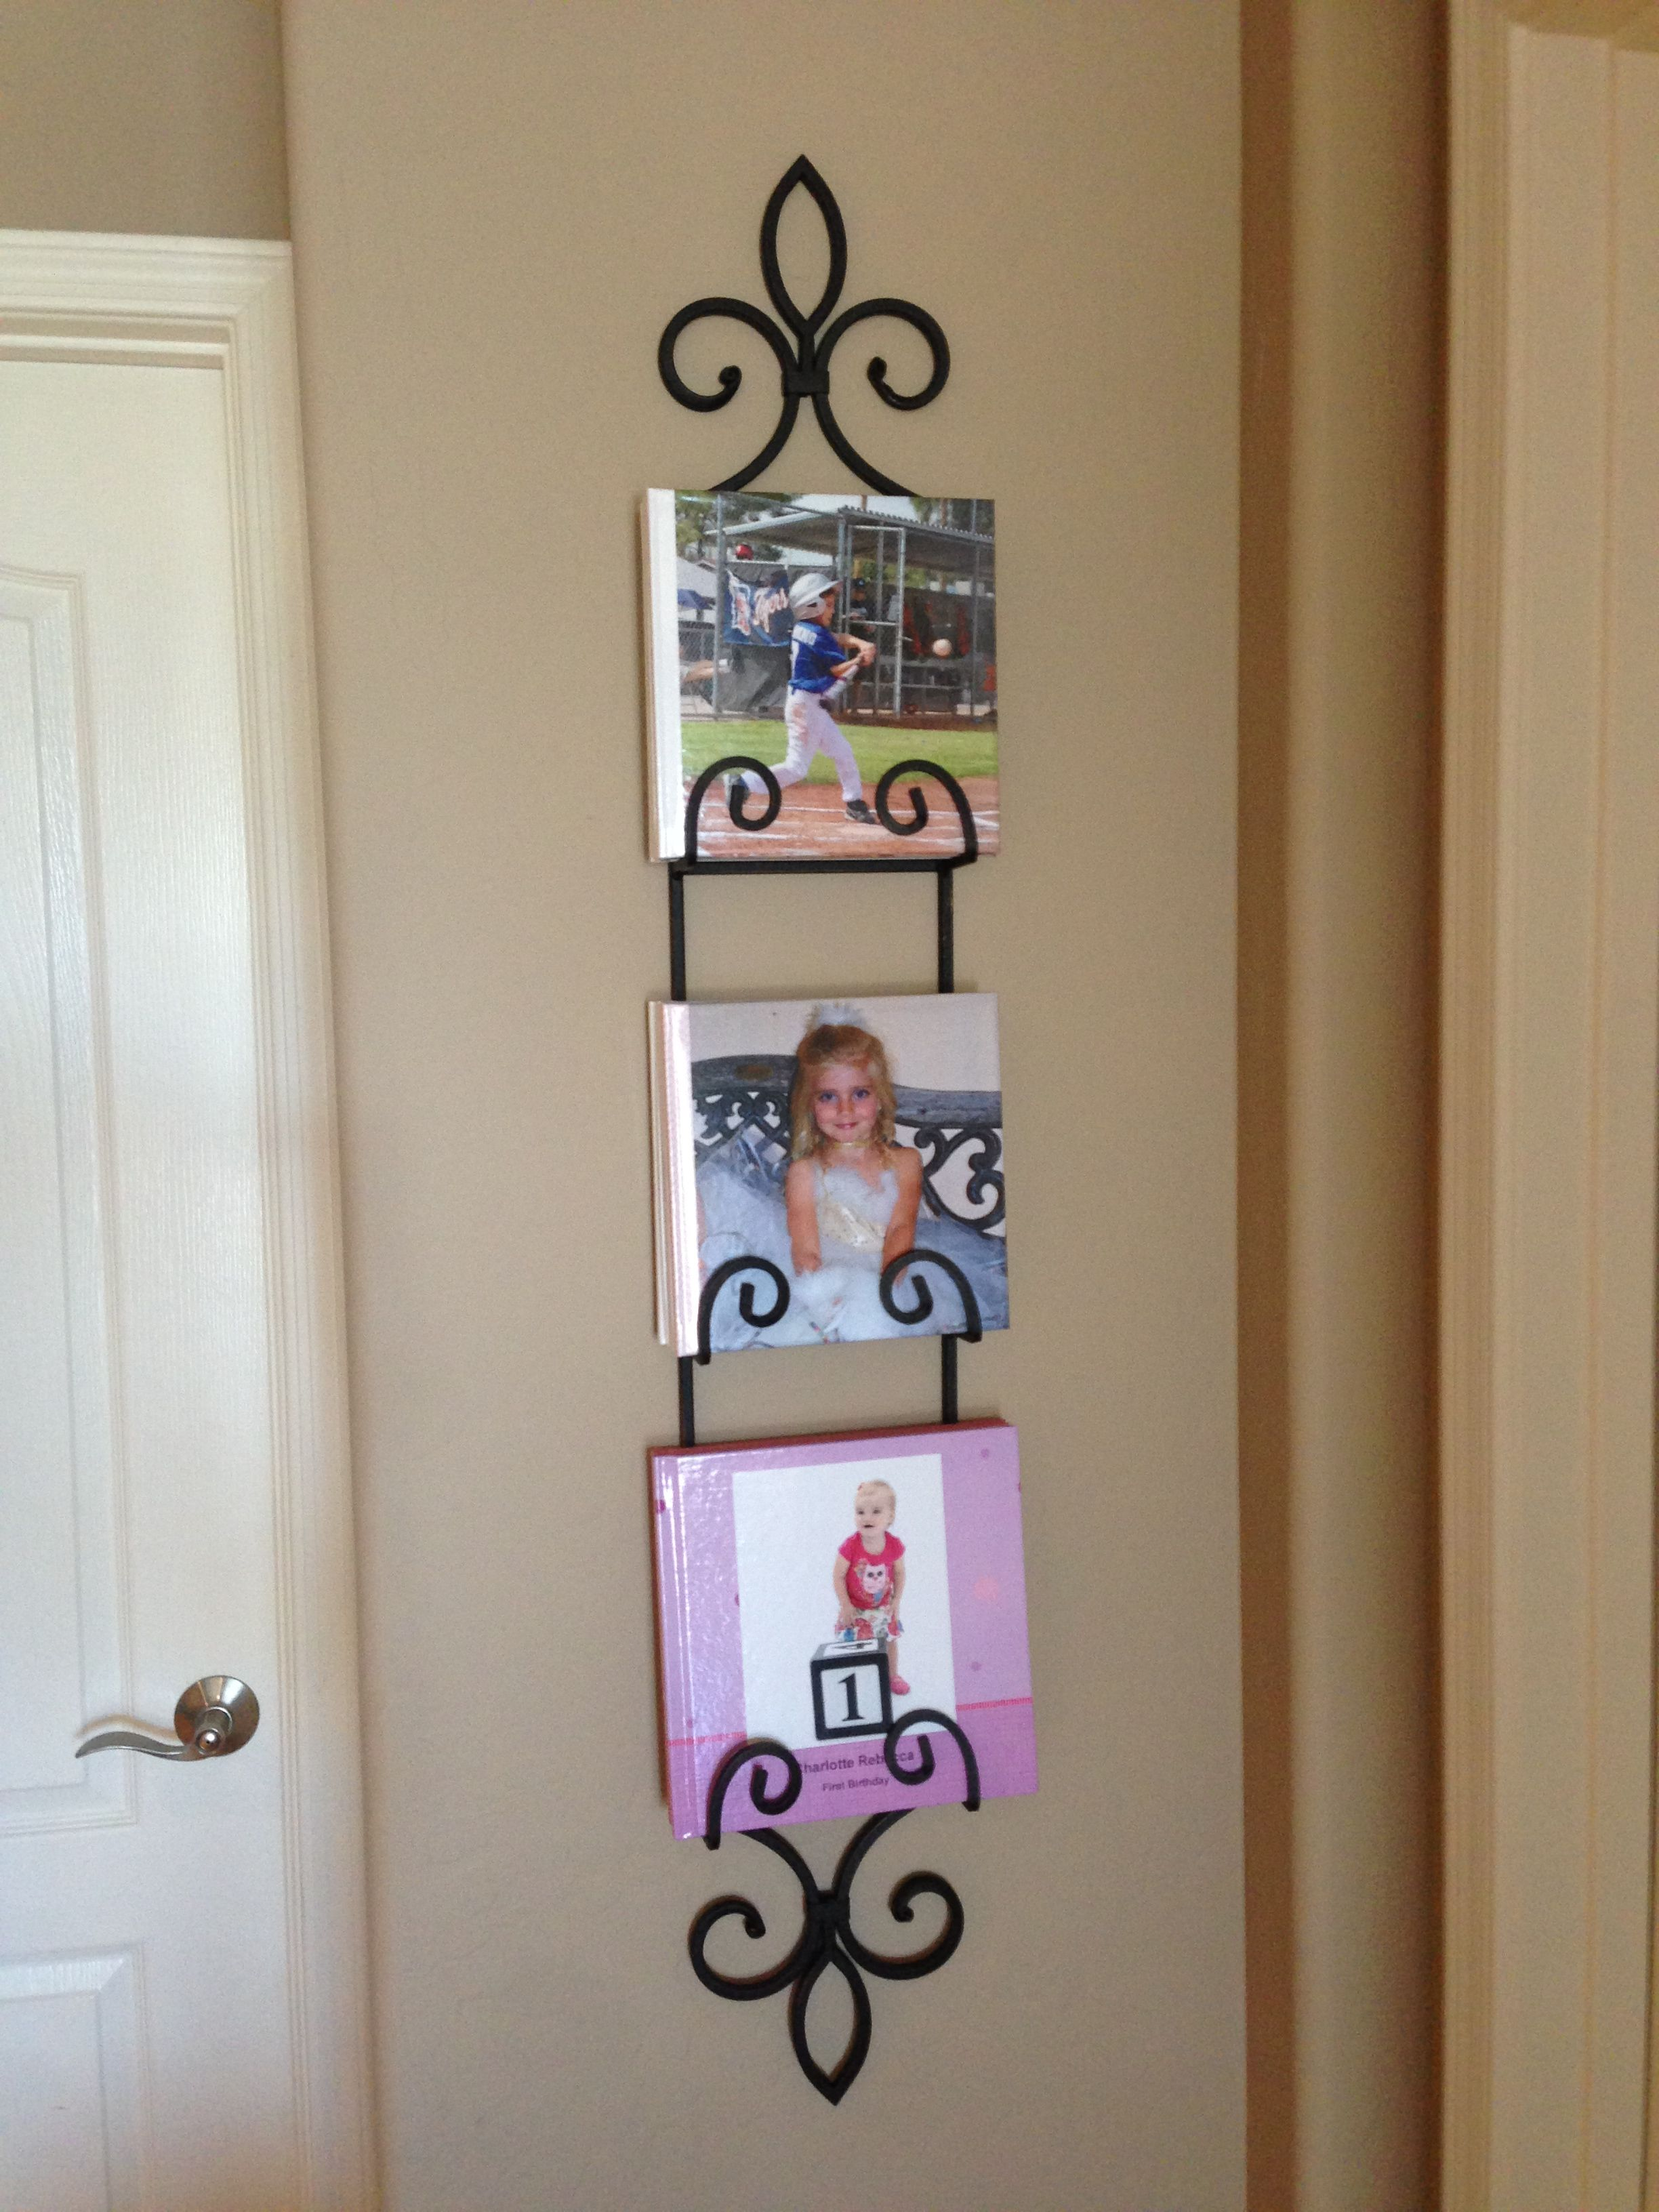 Use a plate display hanger for scrapbooks or picture books. It's an easy opportunity for family, friends and guests to look at them plus now they won't be hiding in bookshelves.